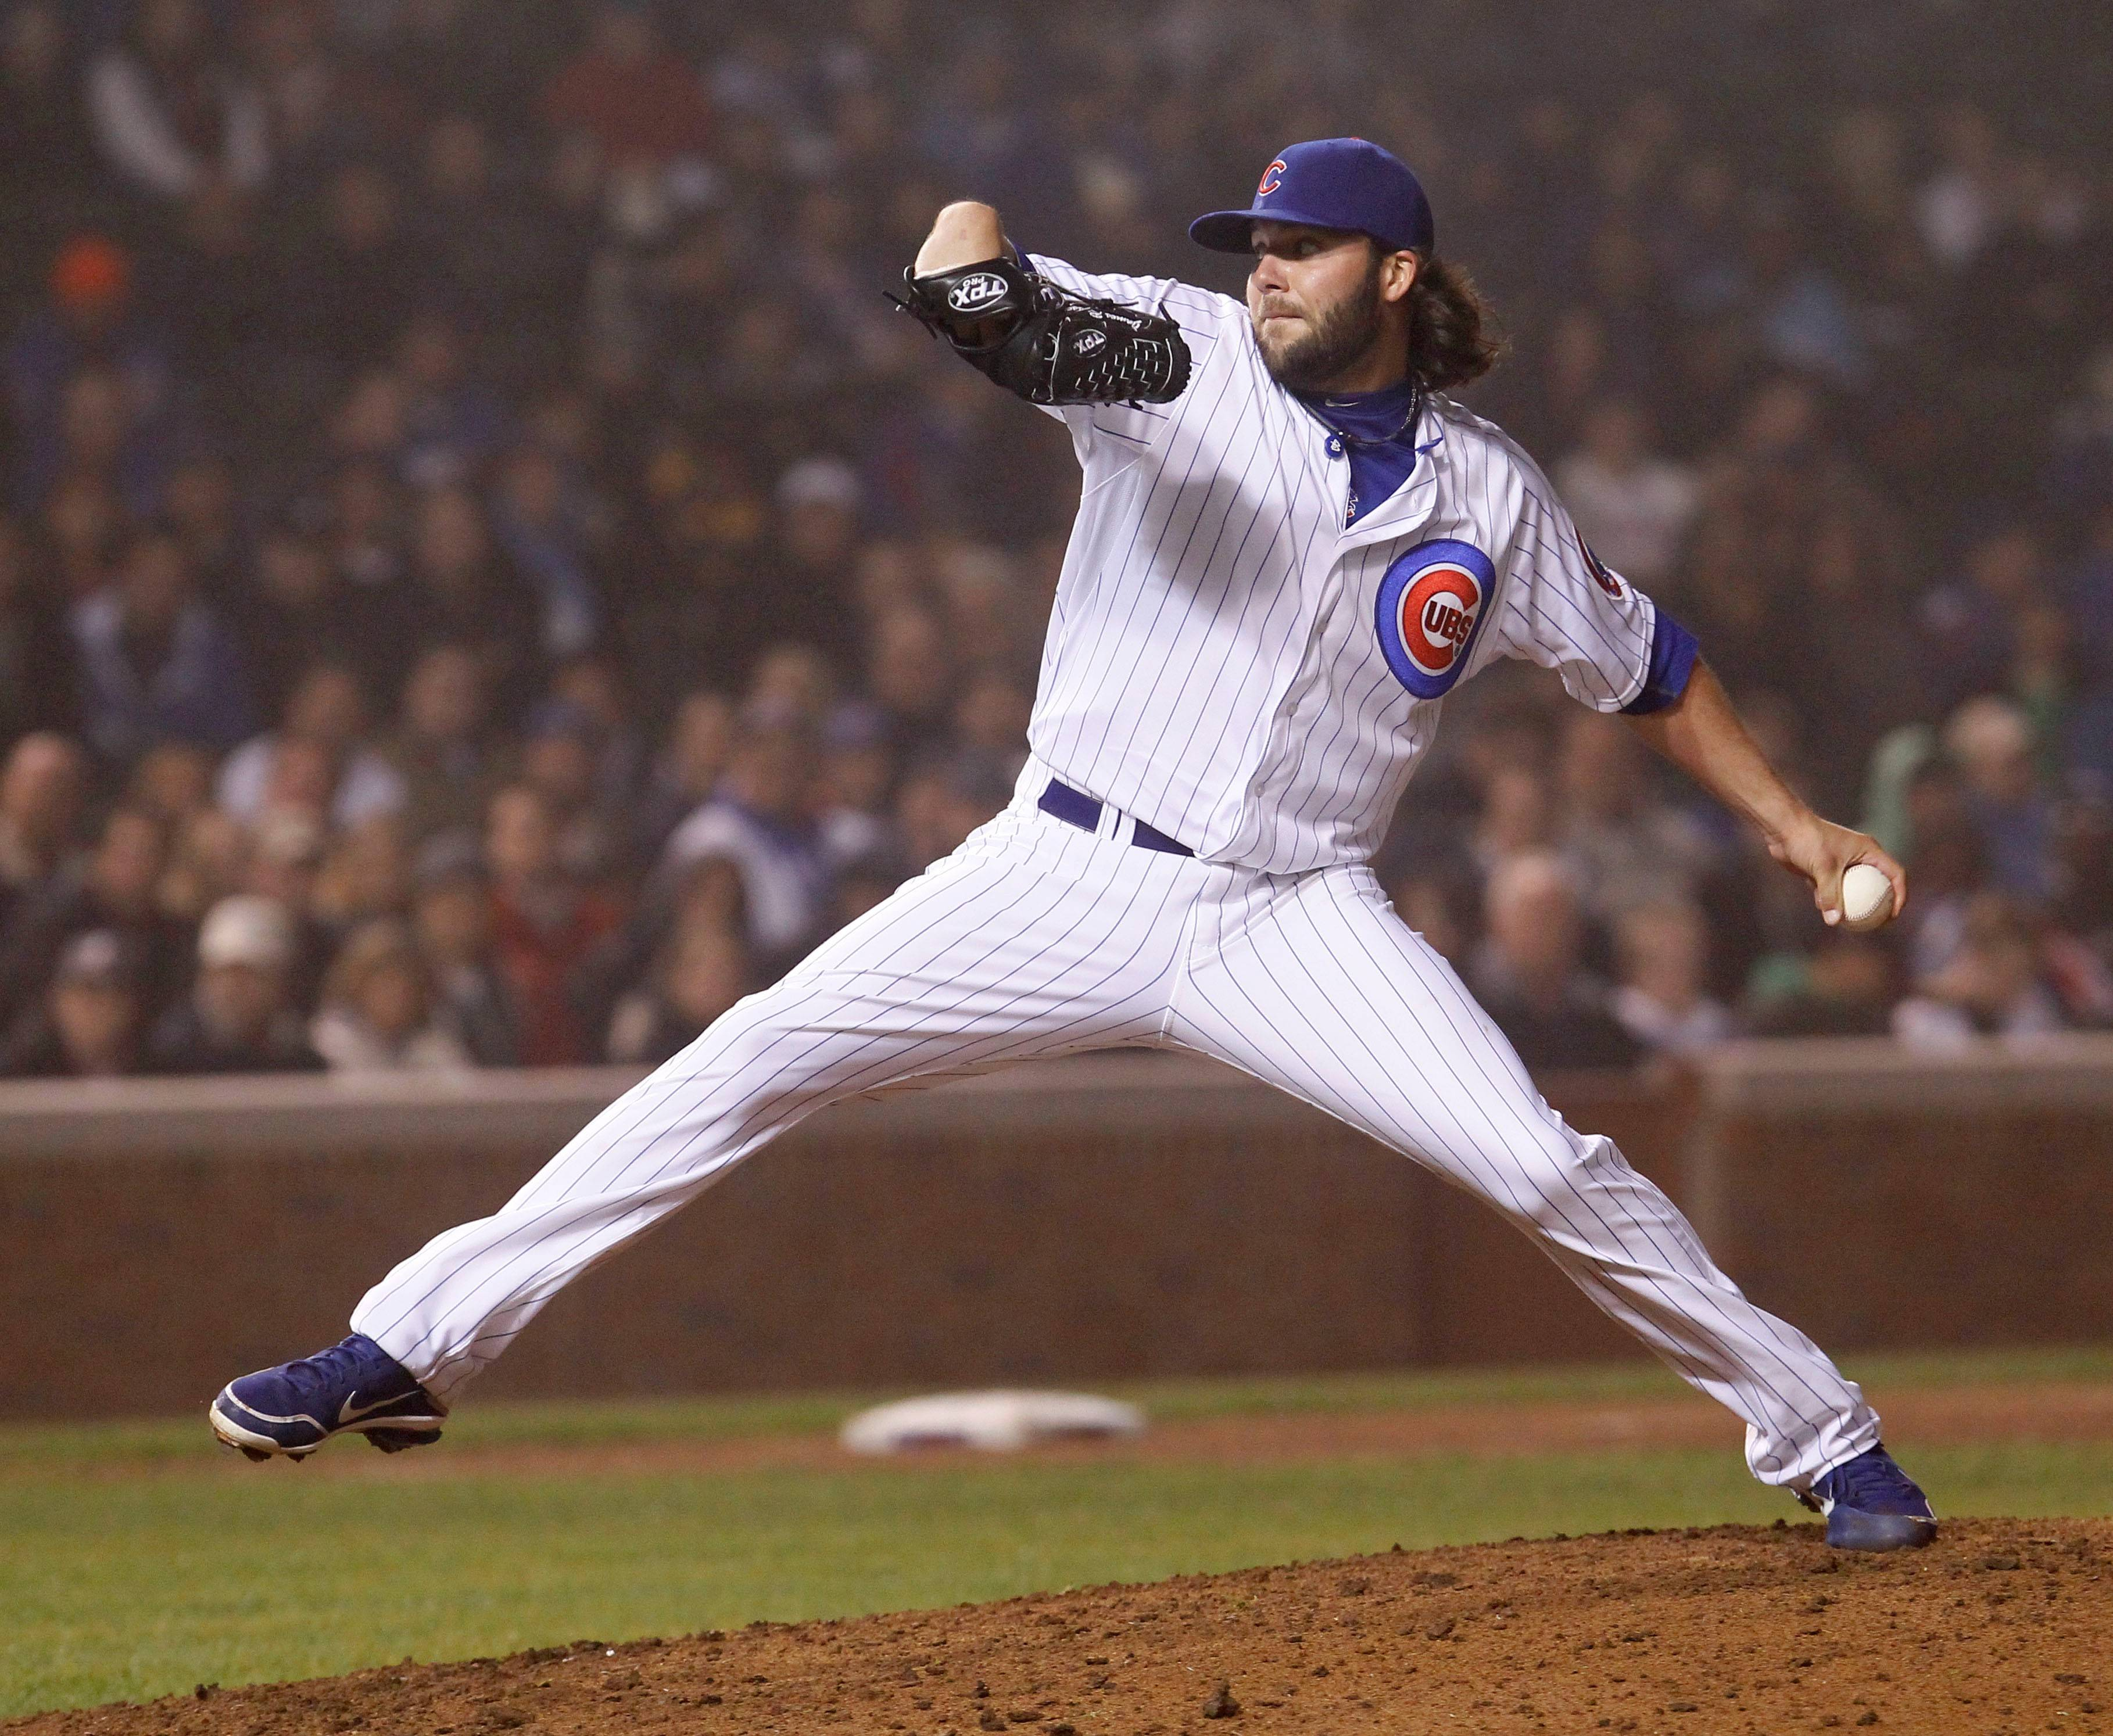 James Russell has pitched in 151 reglar-season games the past two seasons and figures to be a staple in the Cubs bullpen once again this season.